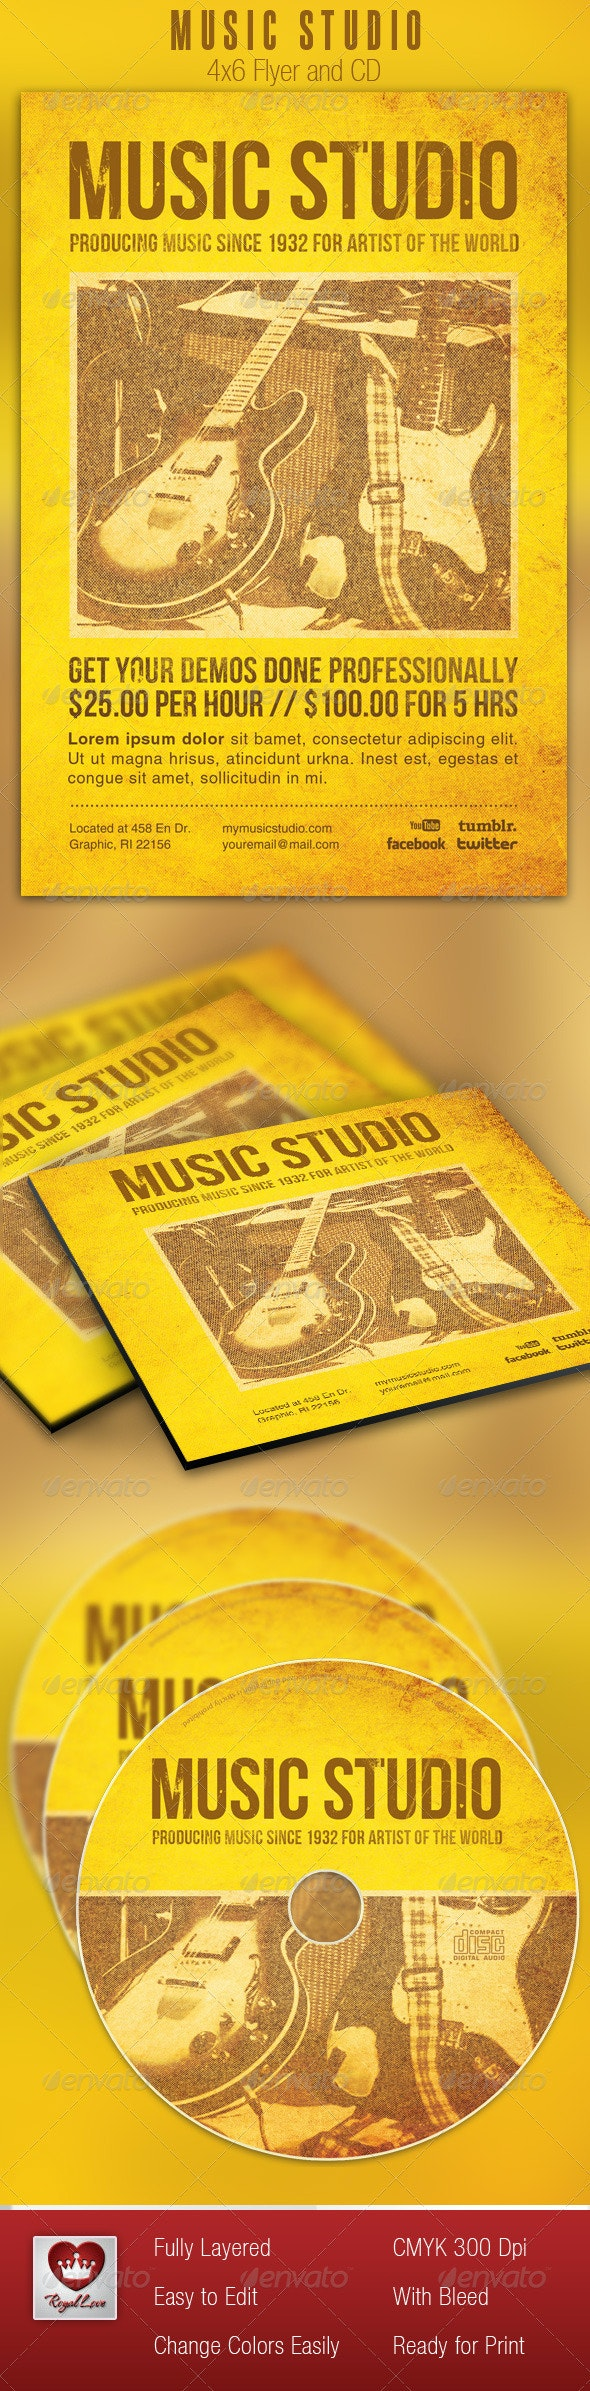 Music Studio Flyer and CD Template - Miscellaneous Events